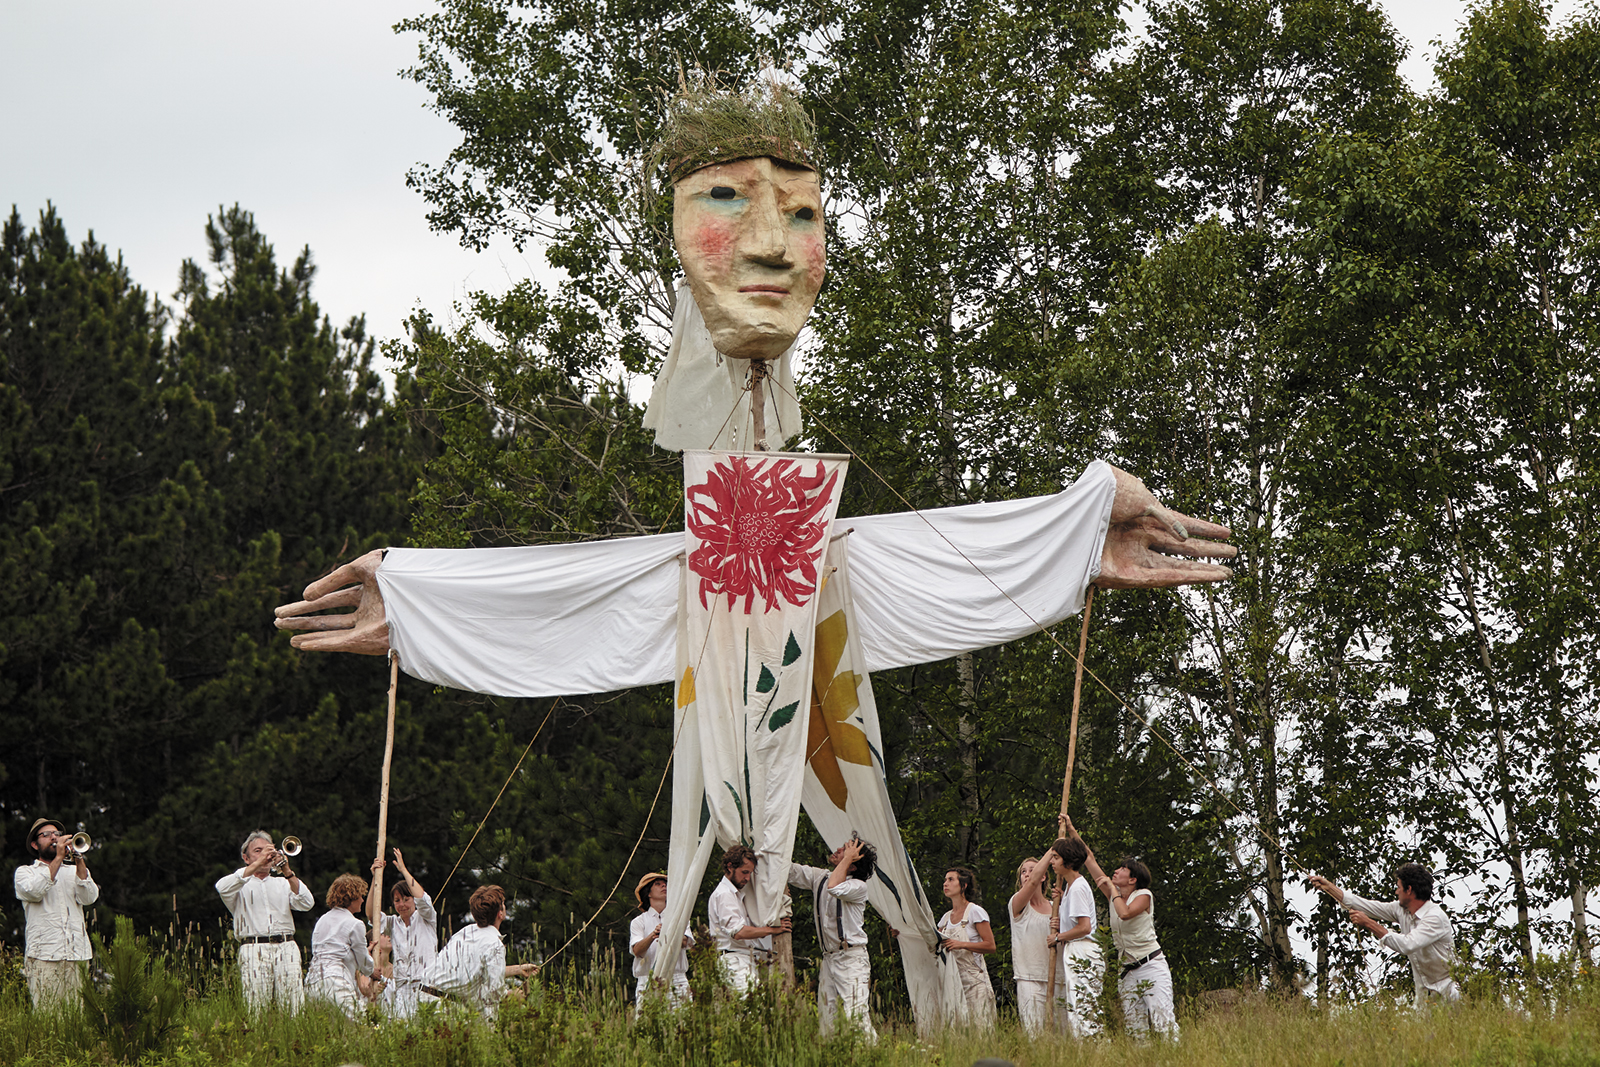 A performance by Bread and Puppet Theater, Glover, Vermont, July 2013